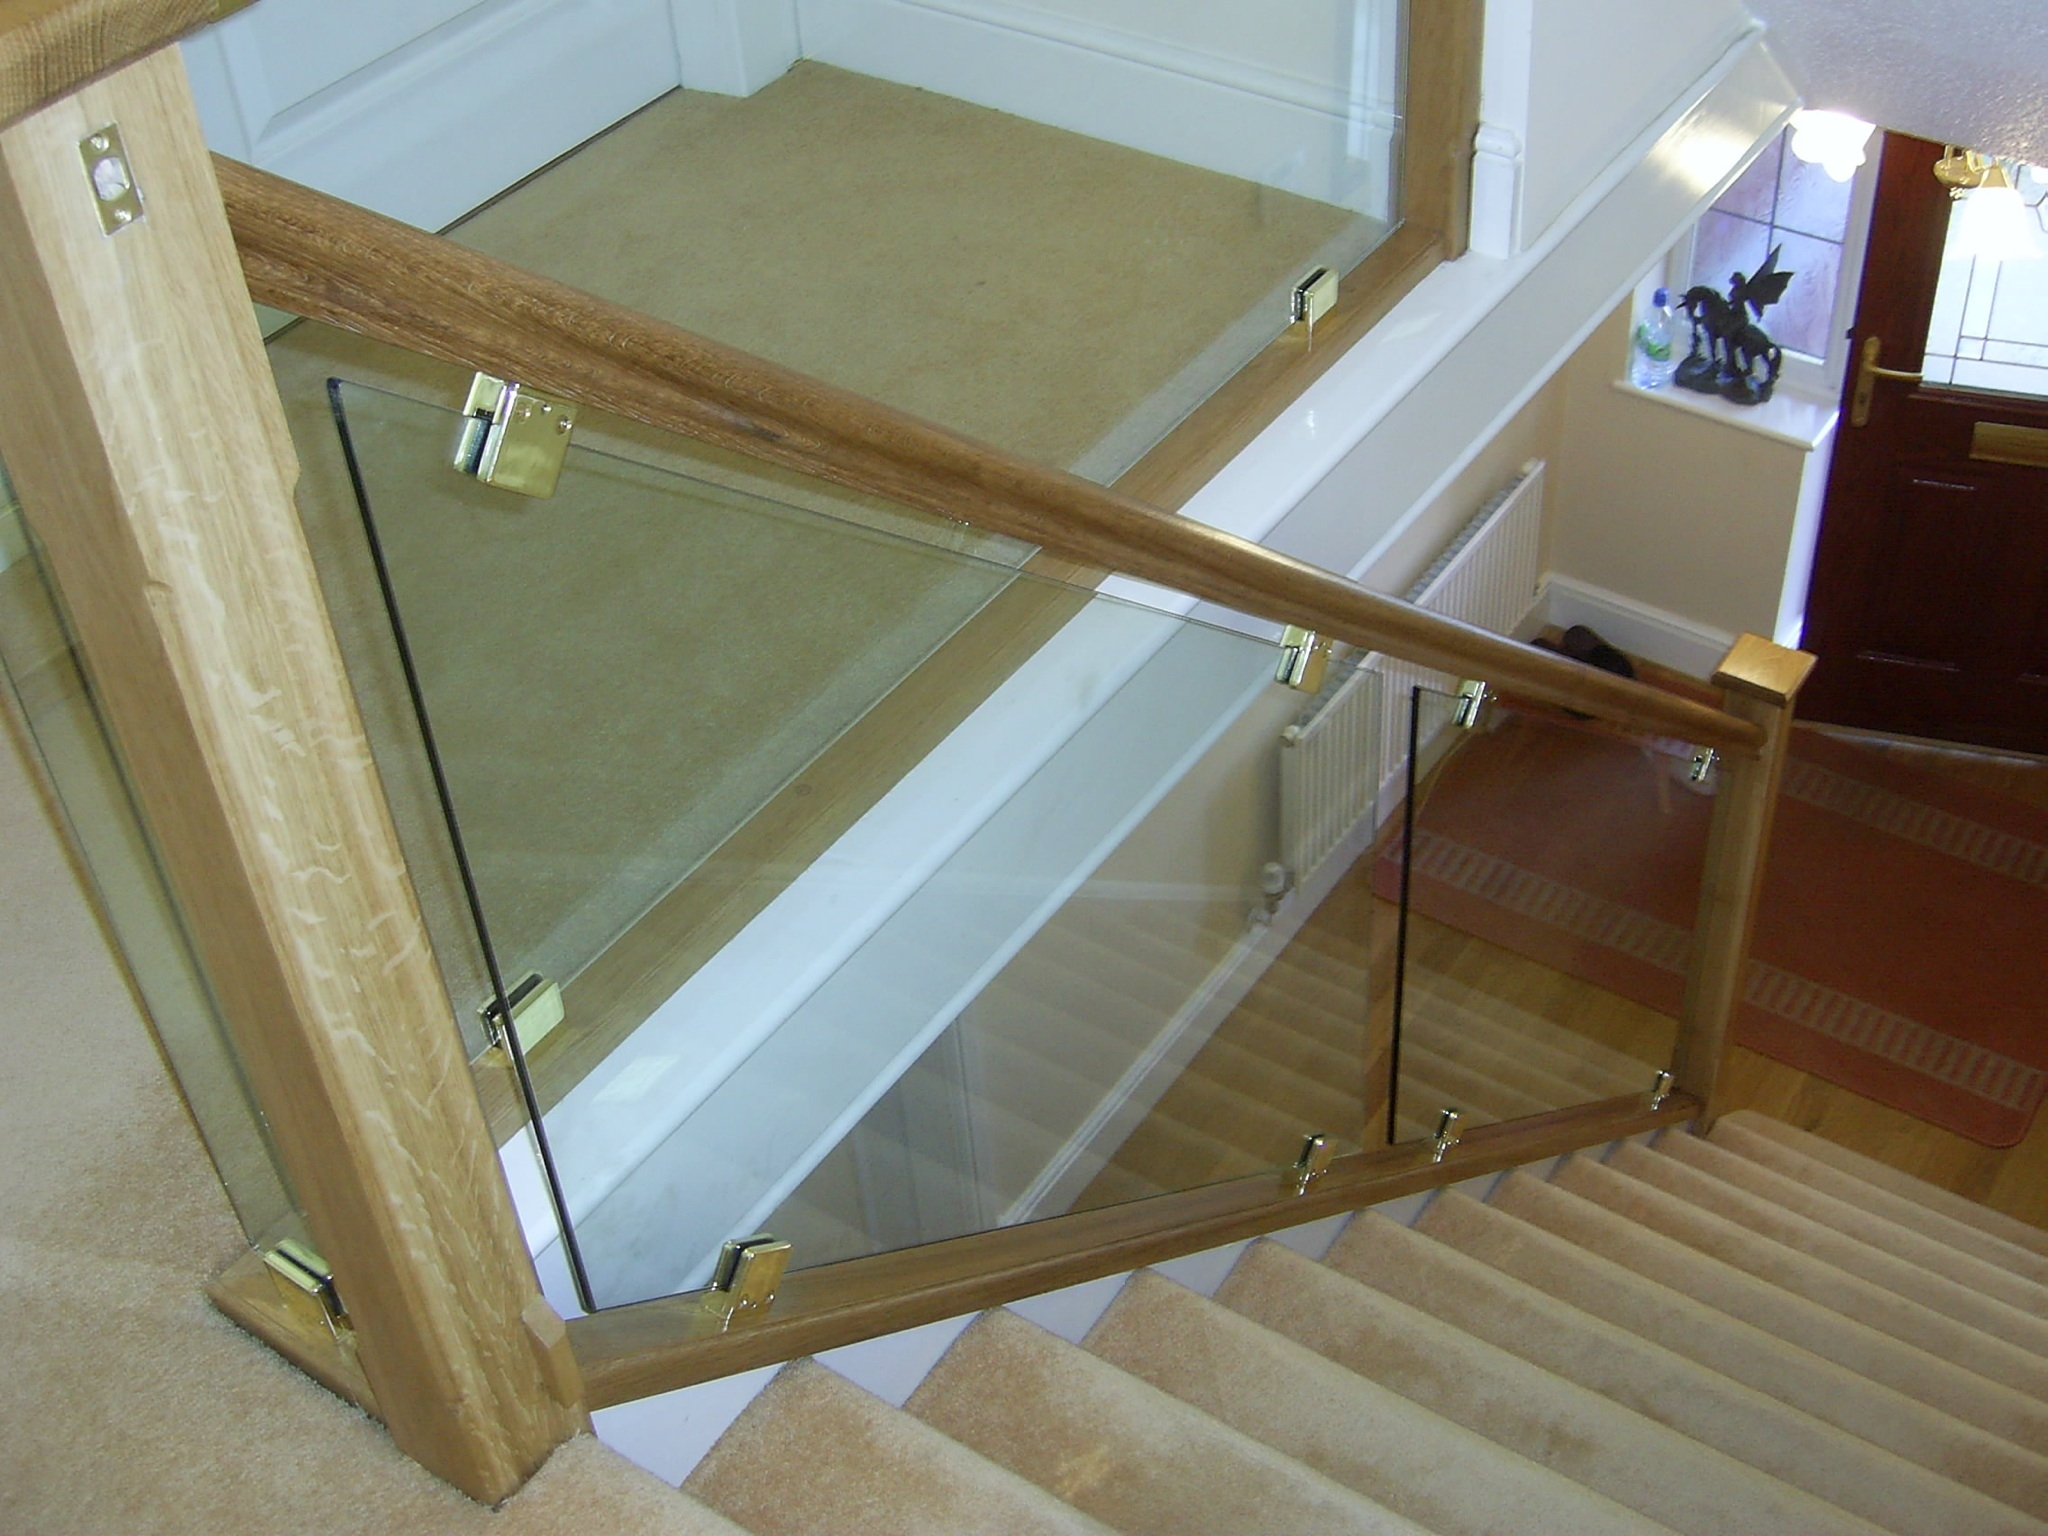 How To Fit Glass Panels For Stairs Plan Your Stairs Induced Info | Frosted Glass Stair Panels | Smoked | Toughened | Deck | Balcony | Contemporary